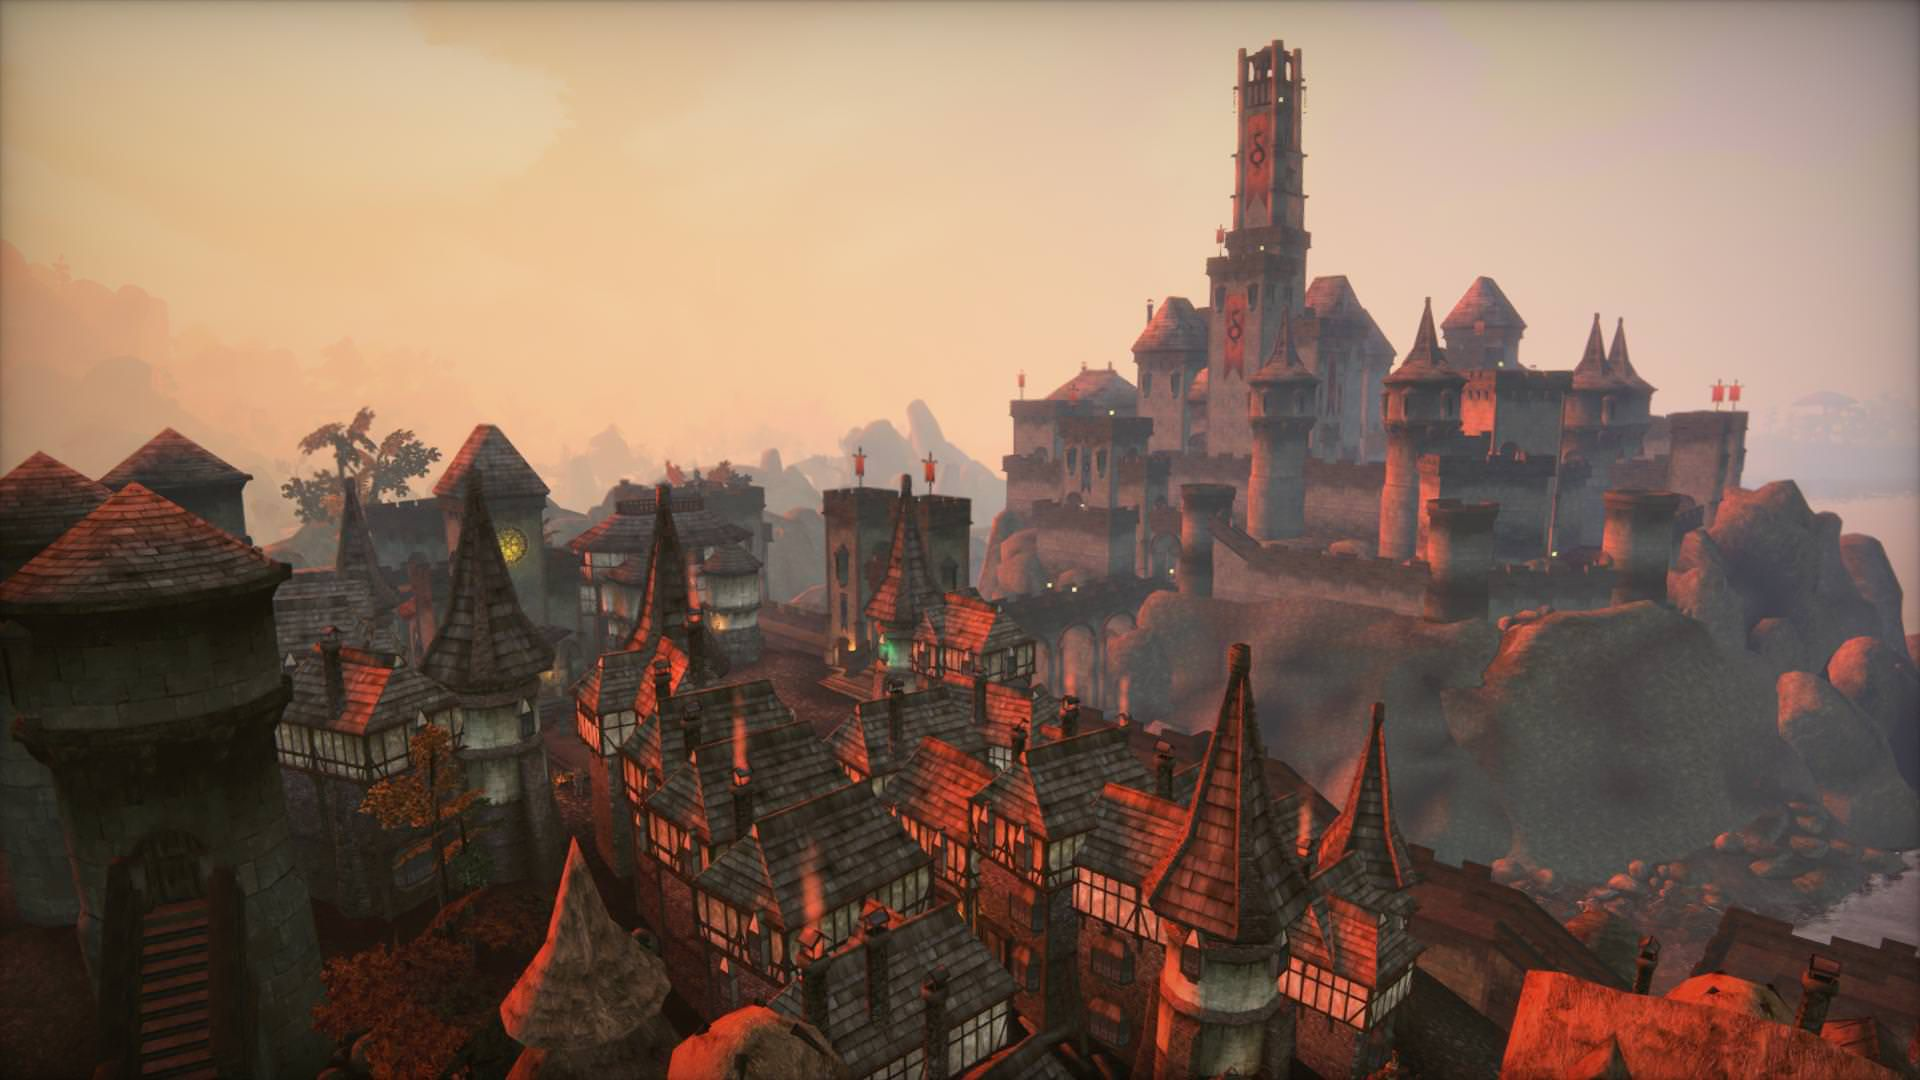 Best Morrowind Mods 2021 Fan made Morrowind mod 17 years in the making is a great excuse to